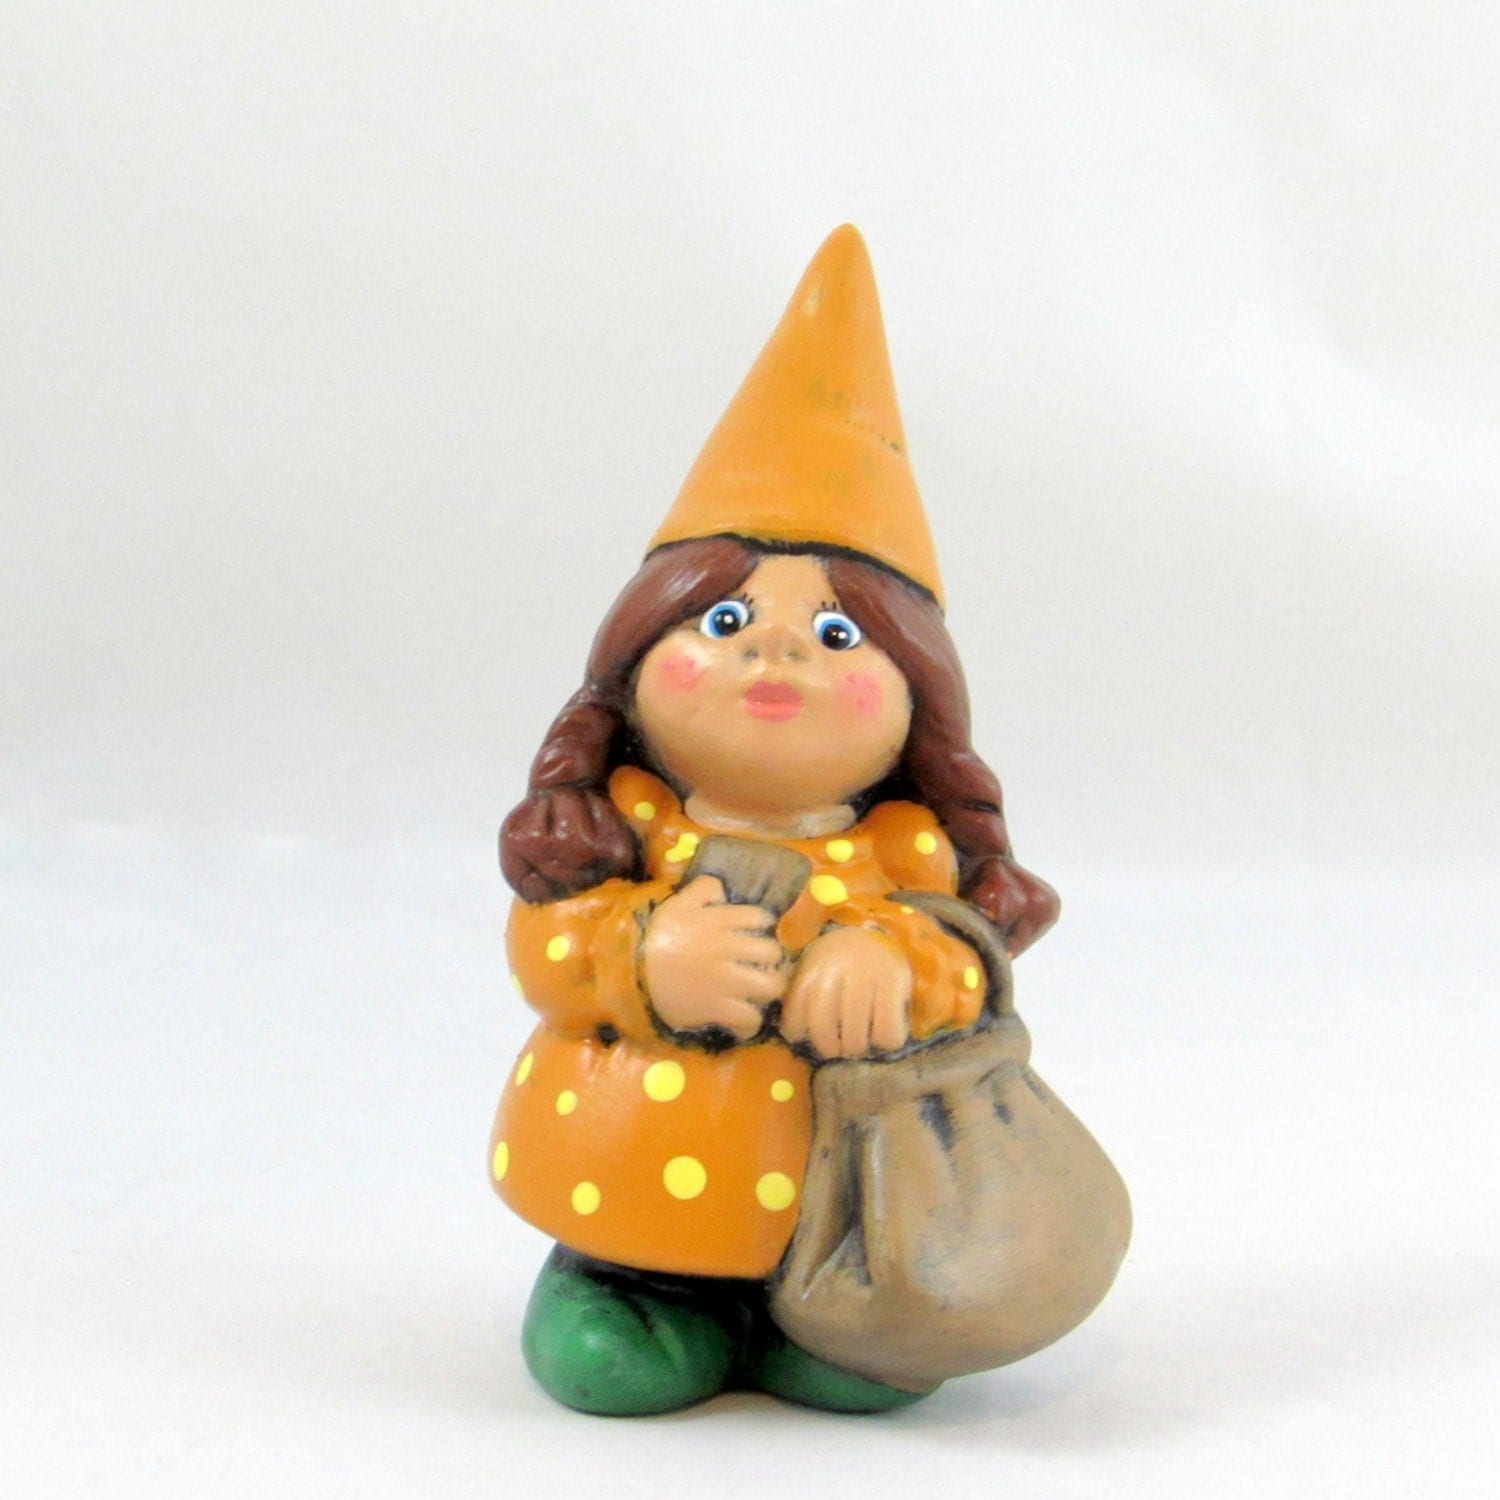 Small Travelling Female Gnome 5 5 Inches Lawn Or Garden